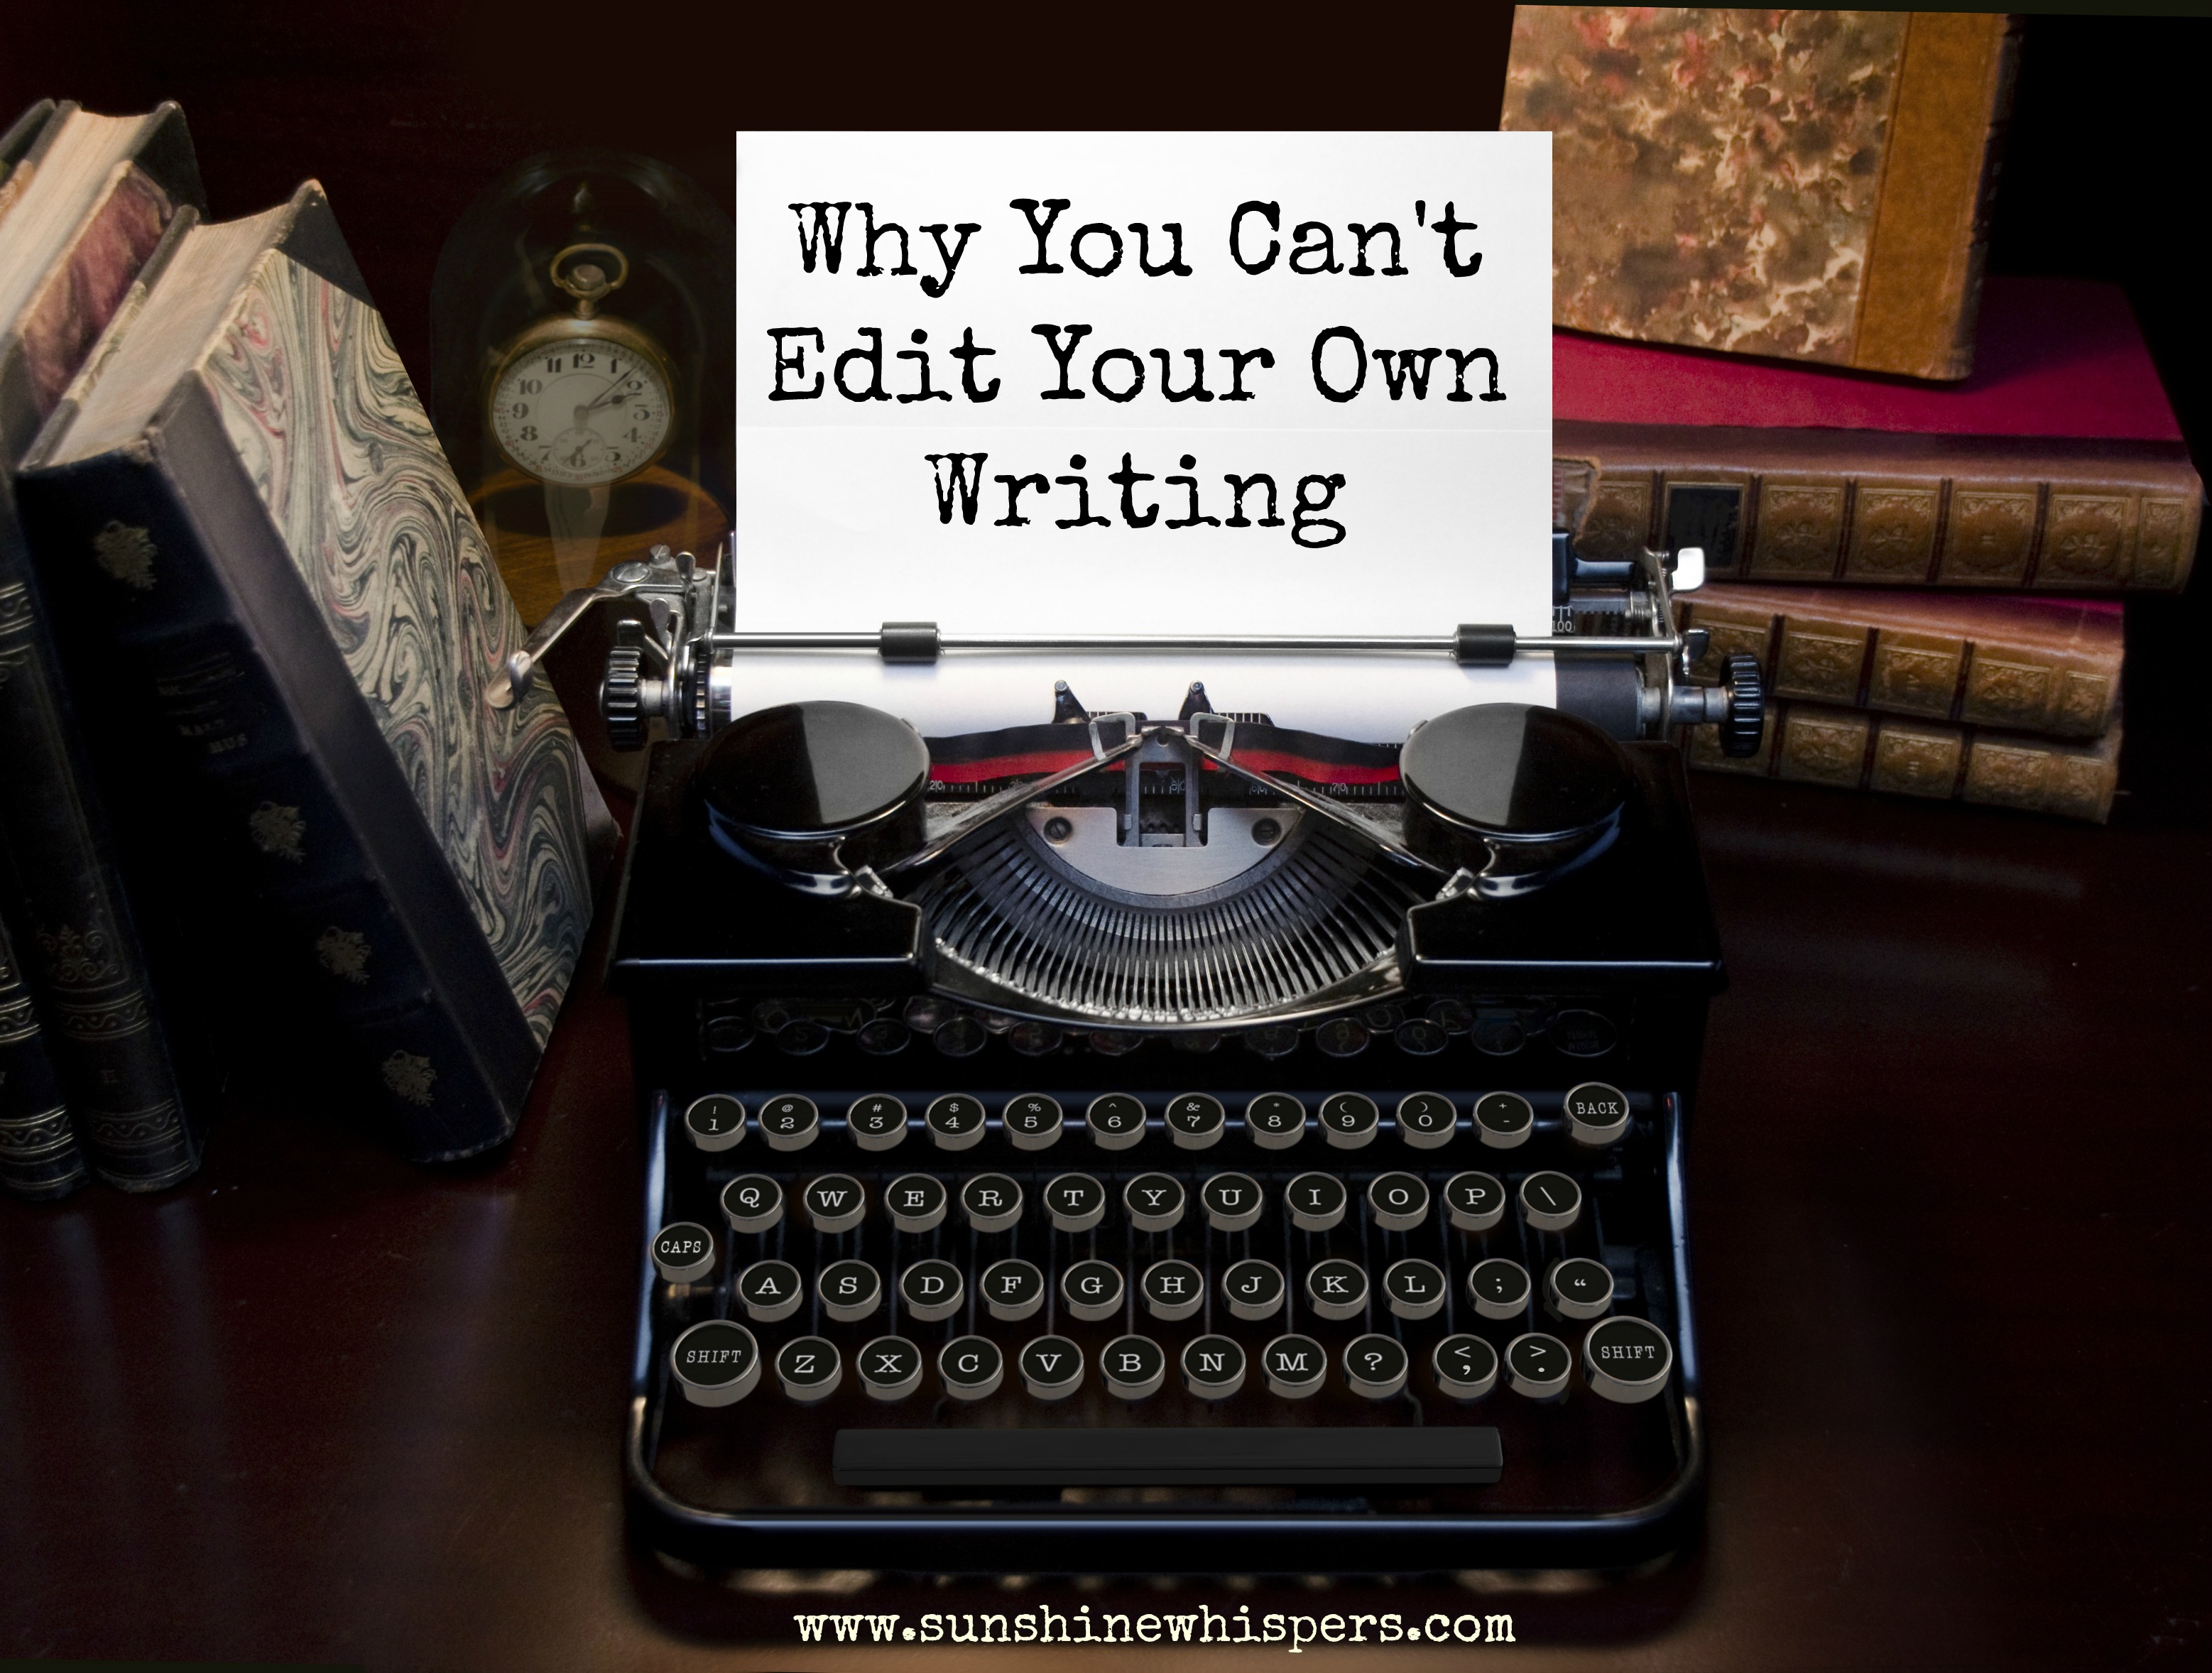 Why You Can't Edit Your Own Writing